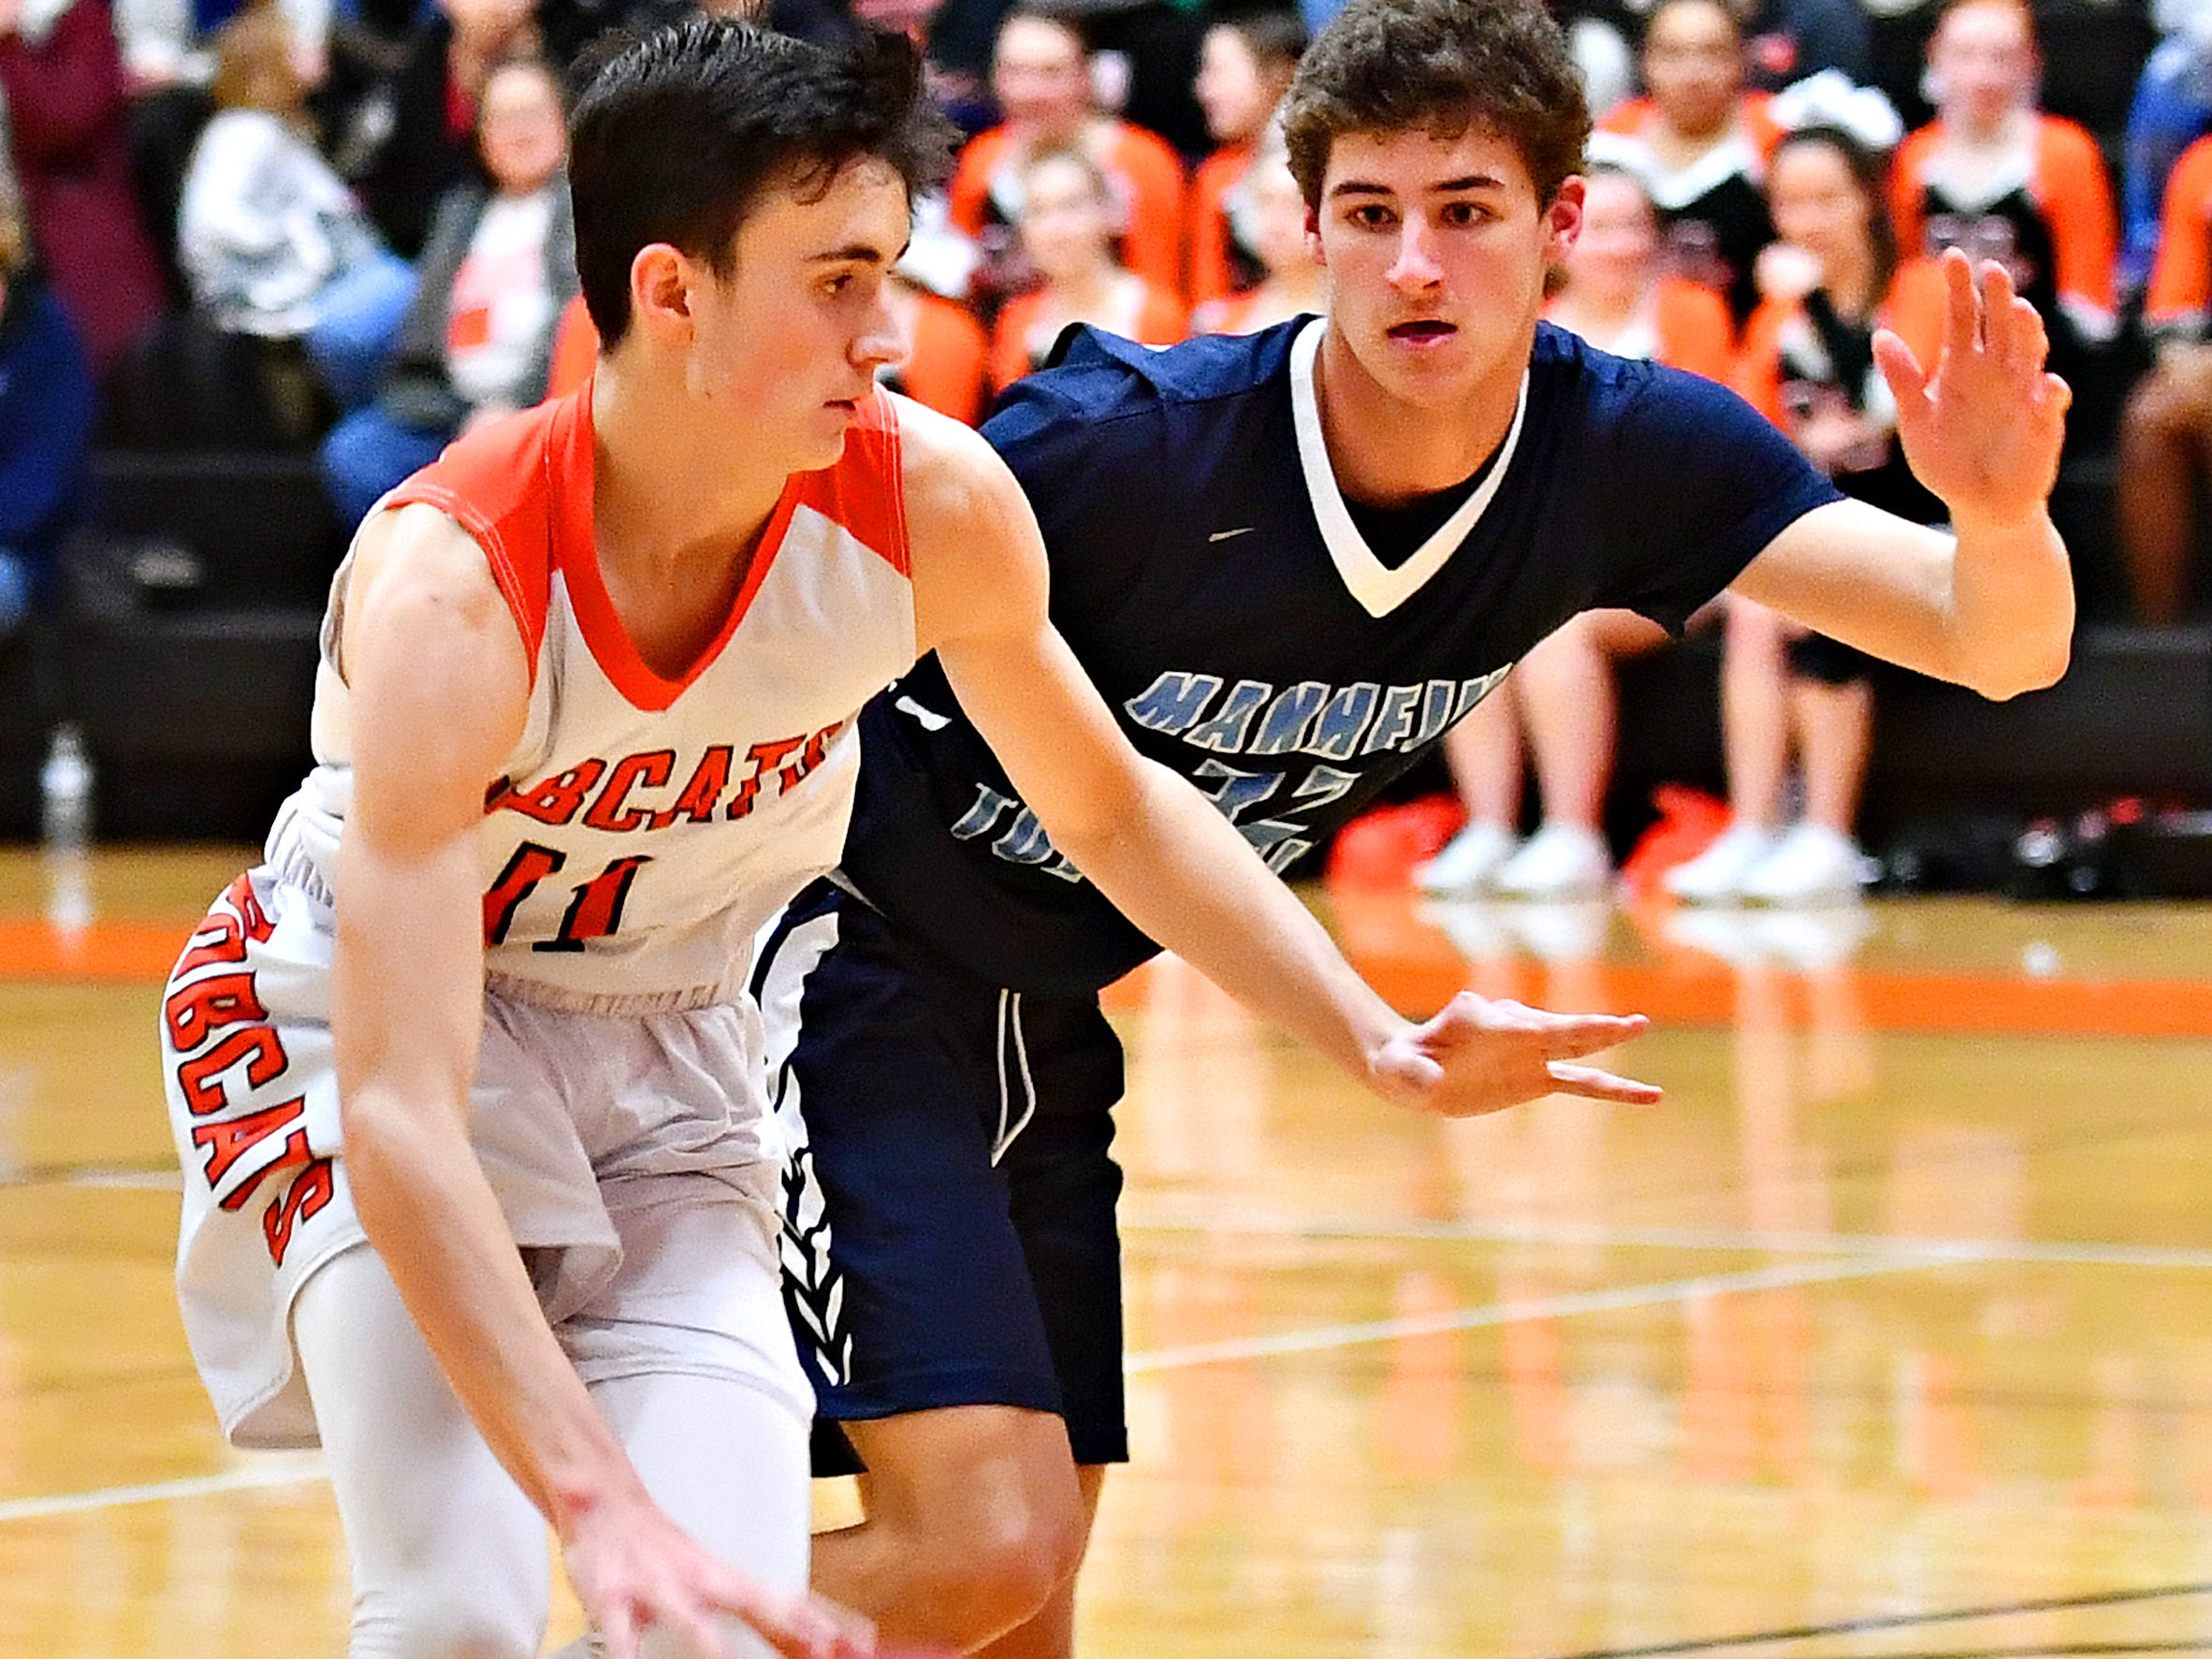 Northeastern's Andrew Brodbeck, left, works to get around Manheim Township's Colin Yablonski during basketball action at Northeastern Senior High School in Manchester, Wednesday, Jan. 9, 2019. Northeastern would win the game 47-46. Dawn J. Sagert photo